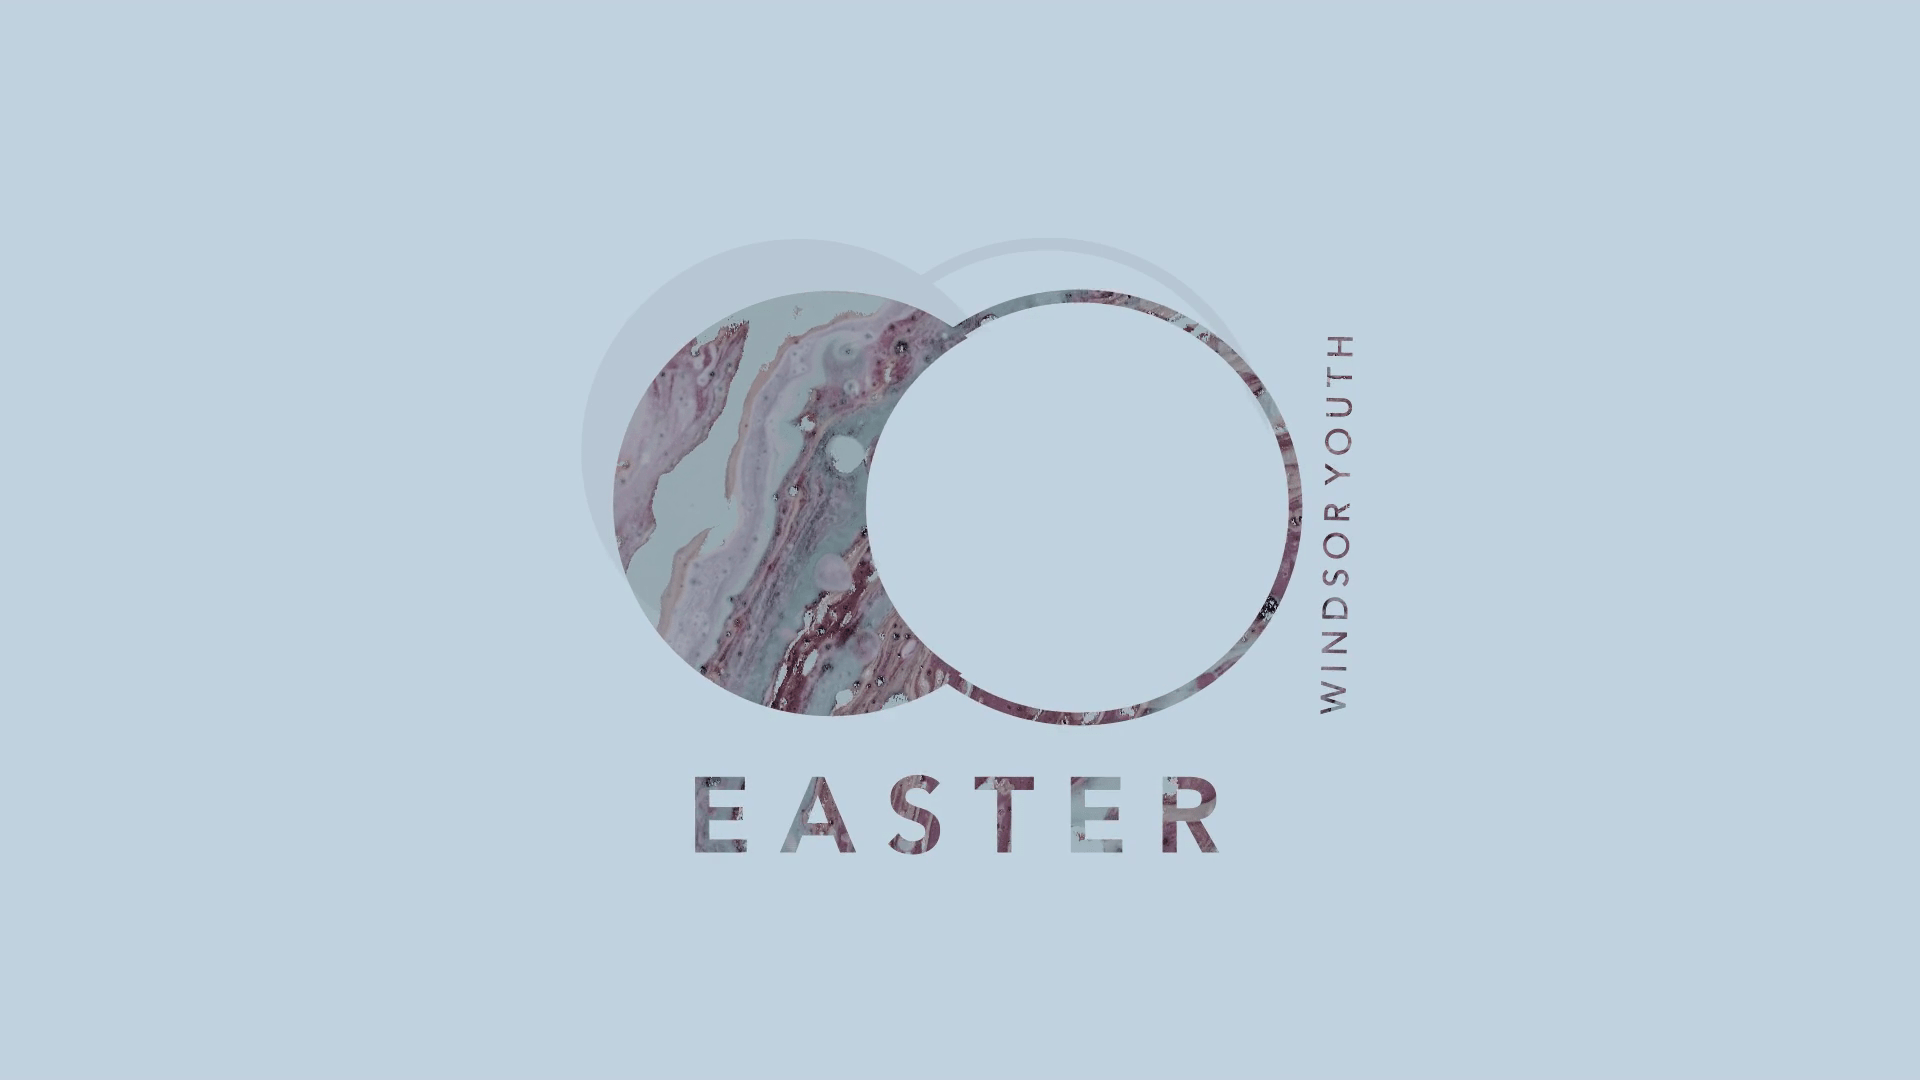 Windsor Youth Easter online logo made up of two circles representing the open tomb